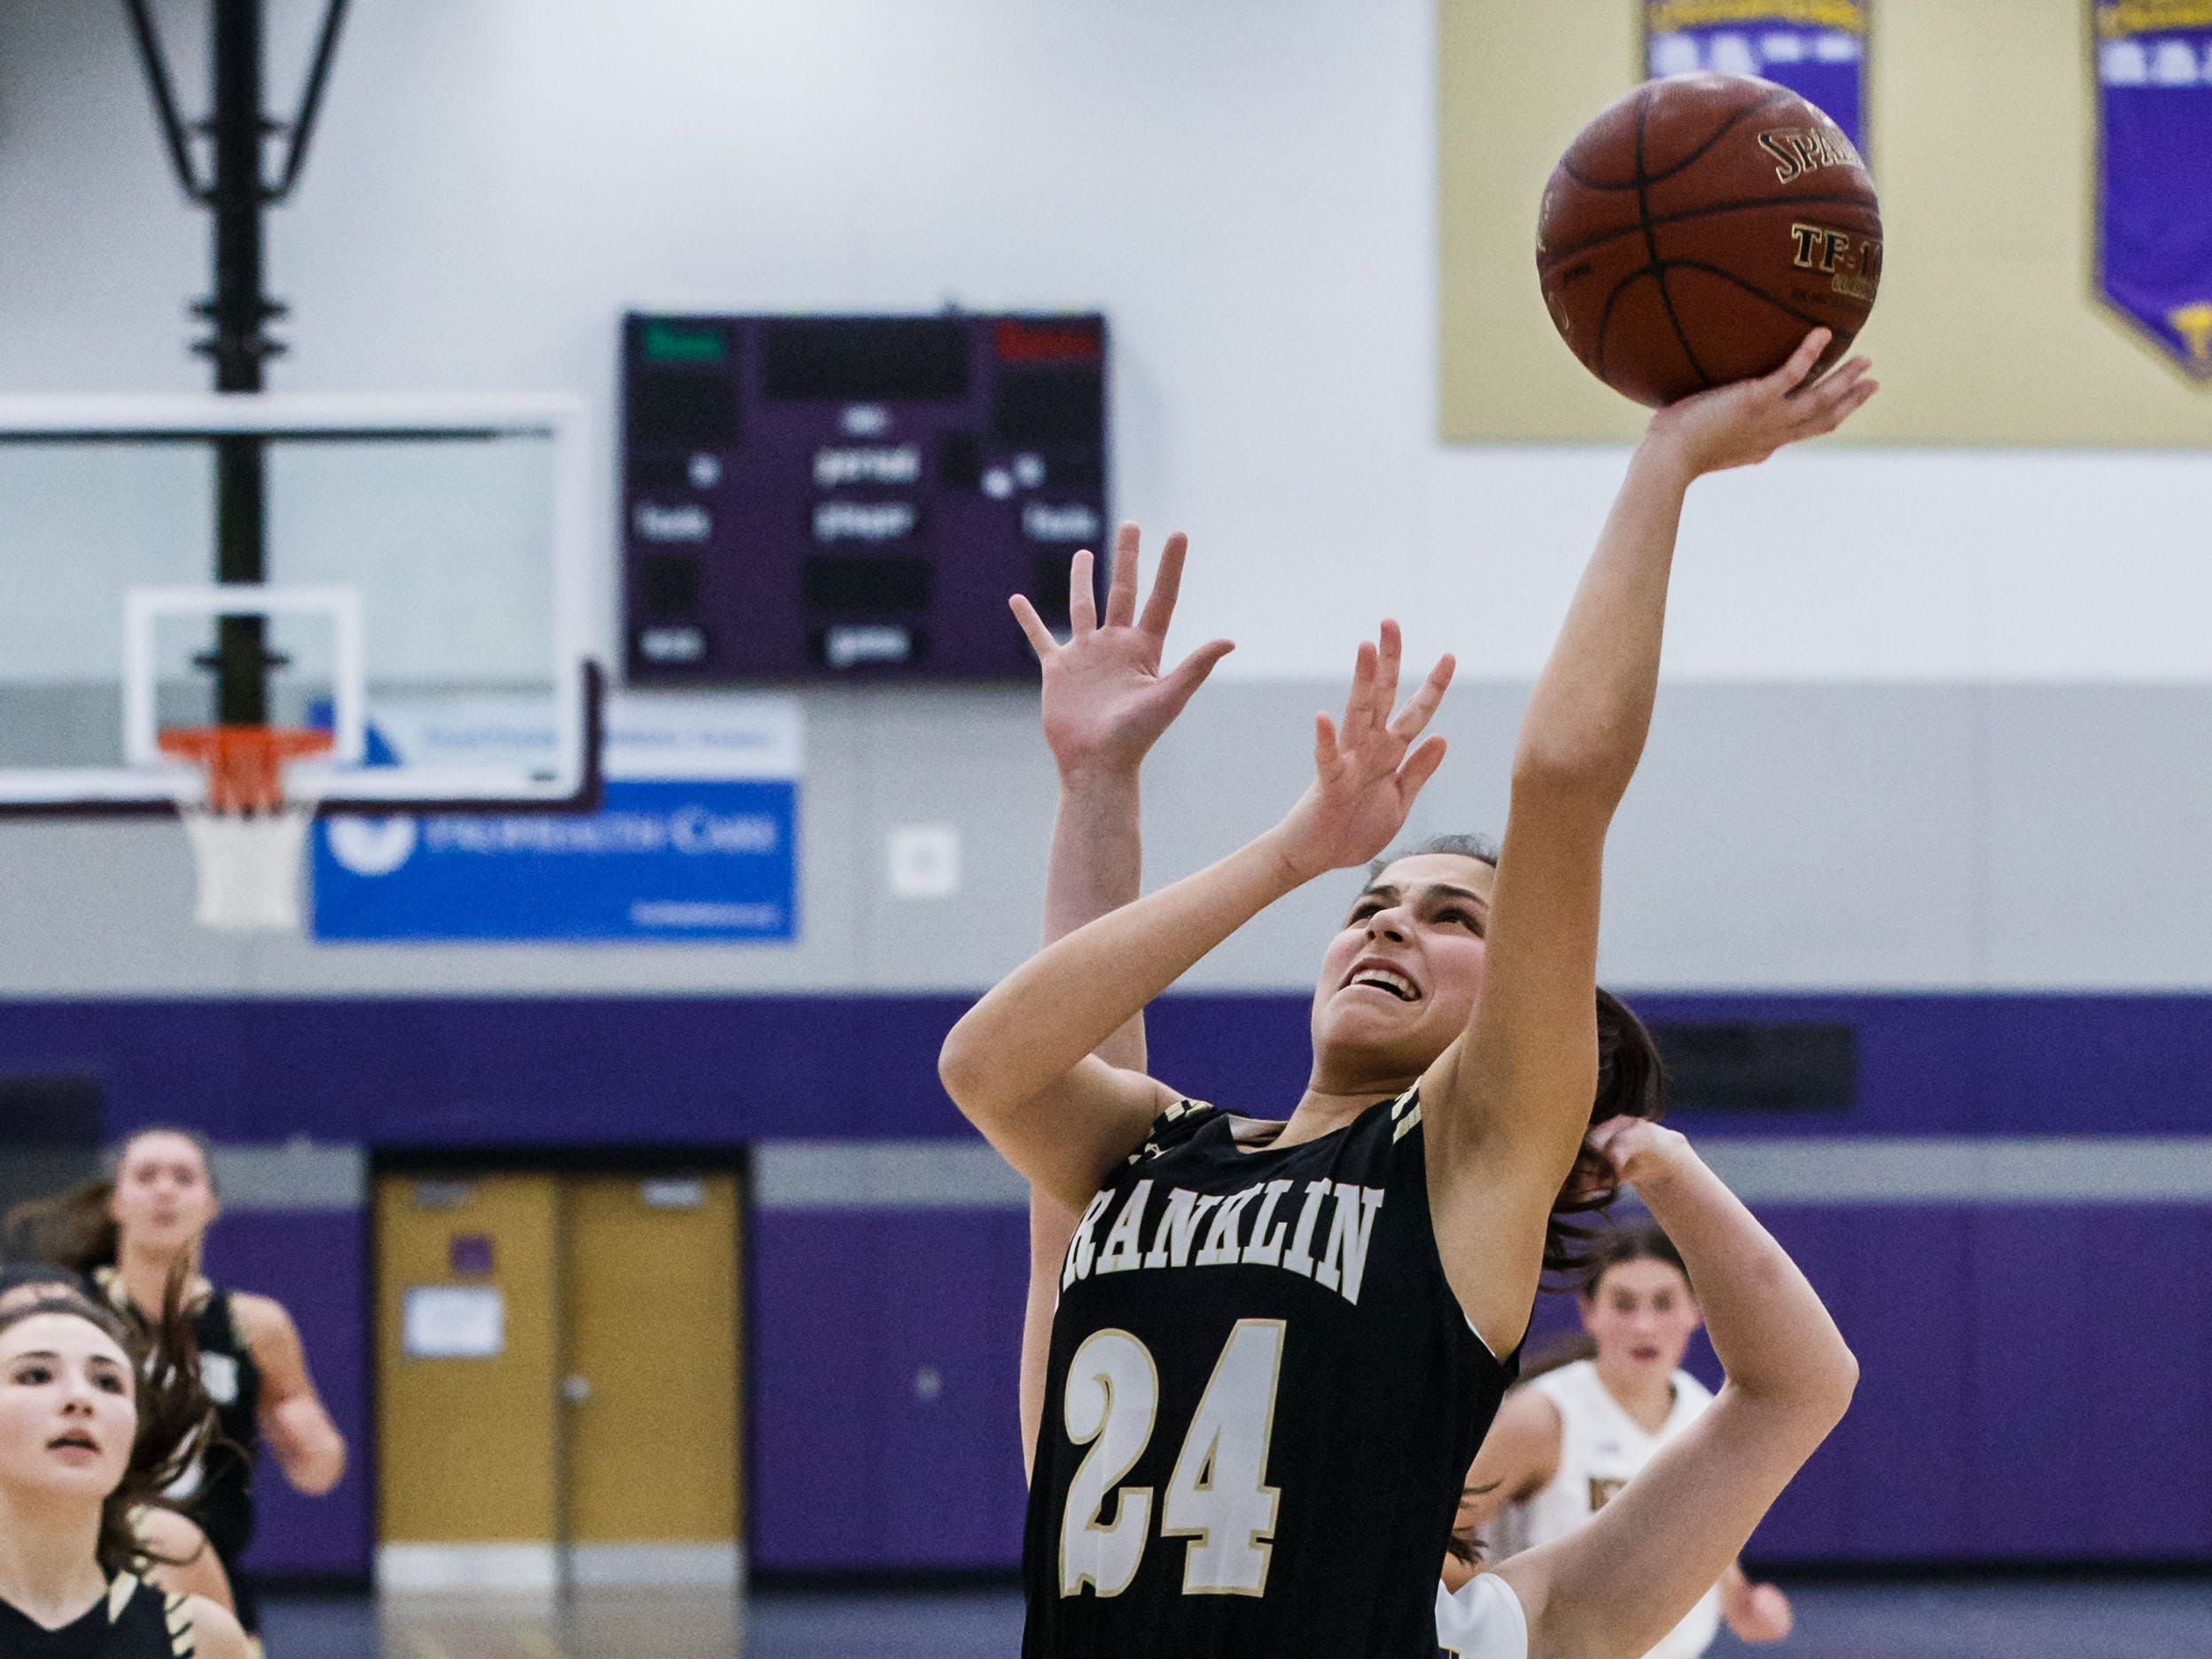 Franklin sophomore Olivia Rangel (24) takes flight for a layup during the game at Oconomowoc on Monday, Nov. 19, 2018.